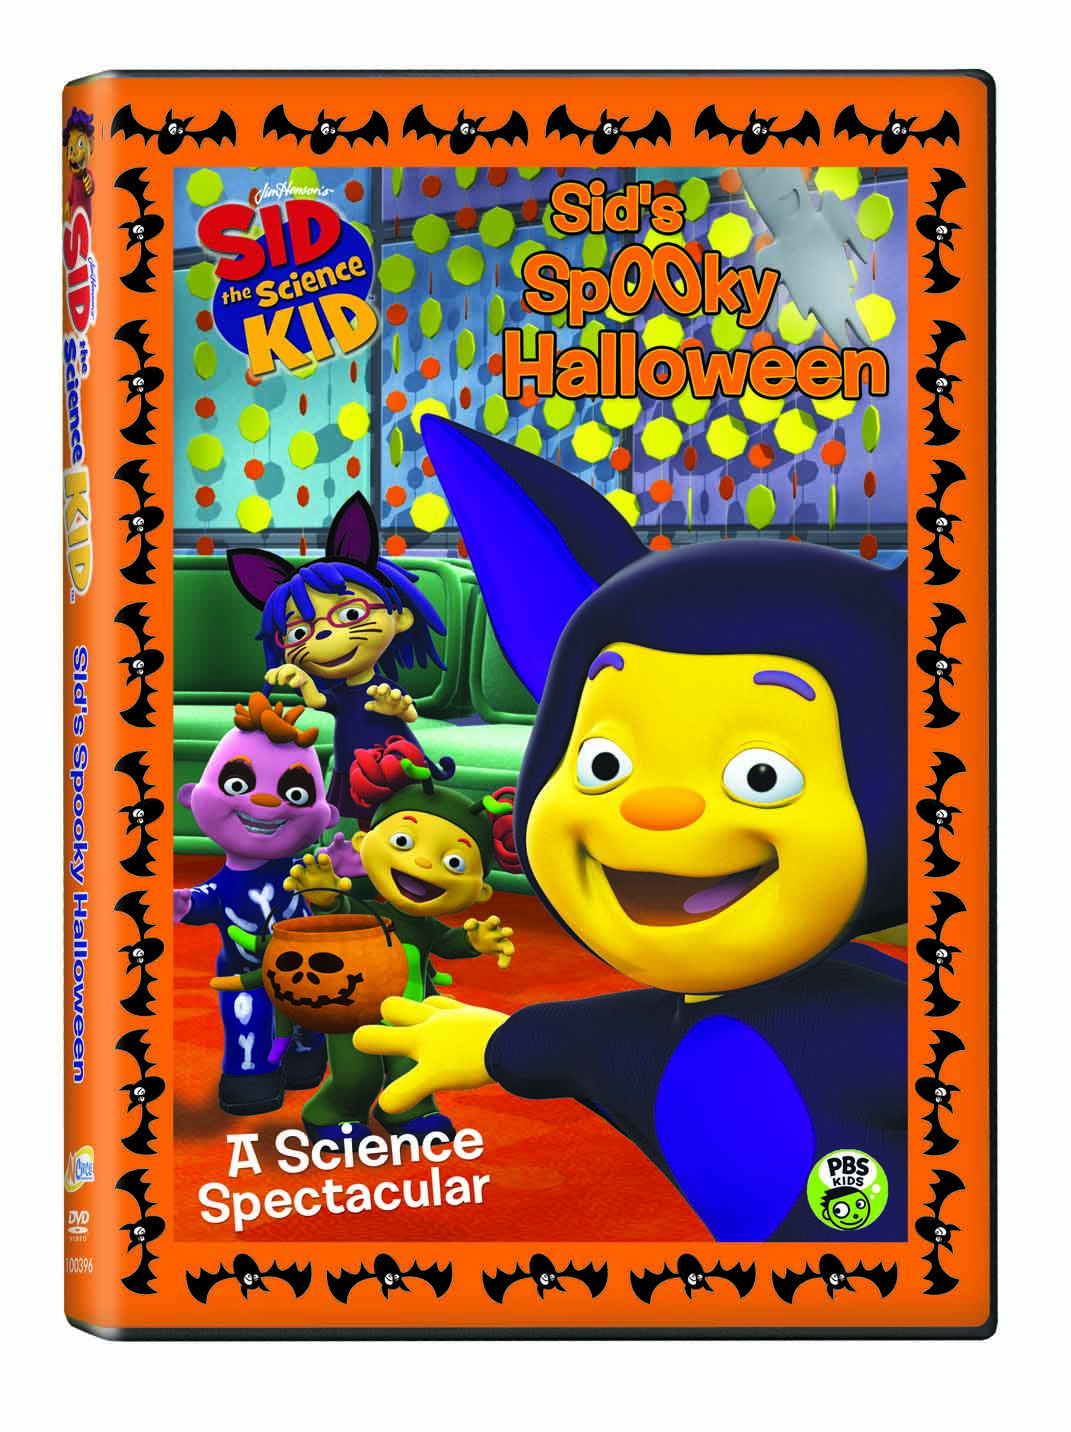 learn to have fun on halloween - bb product reviews